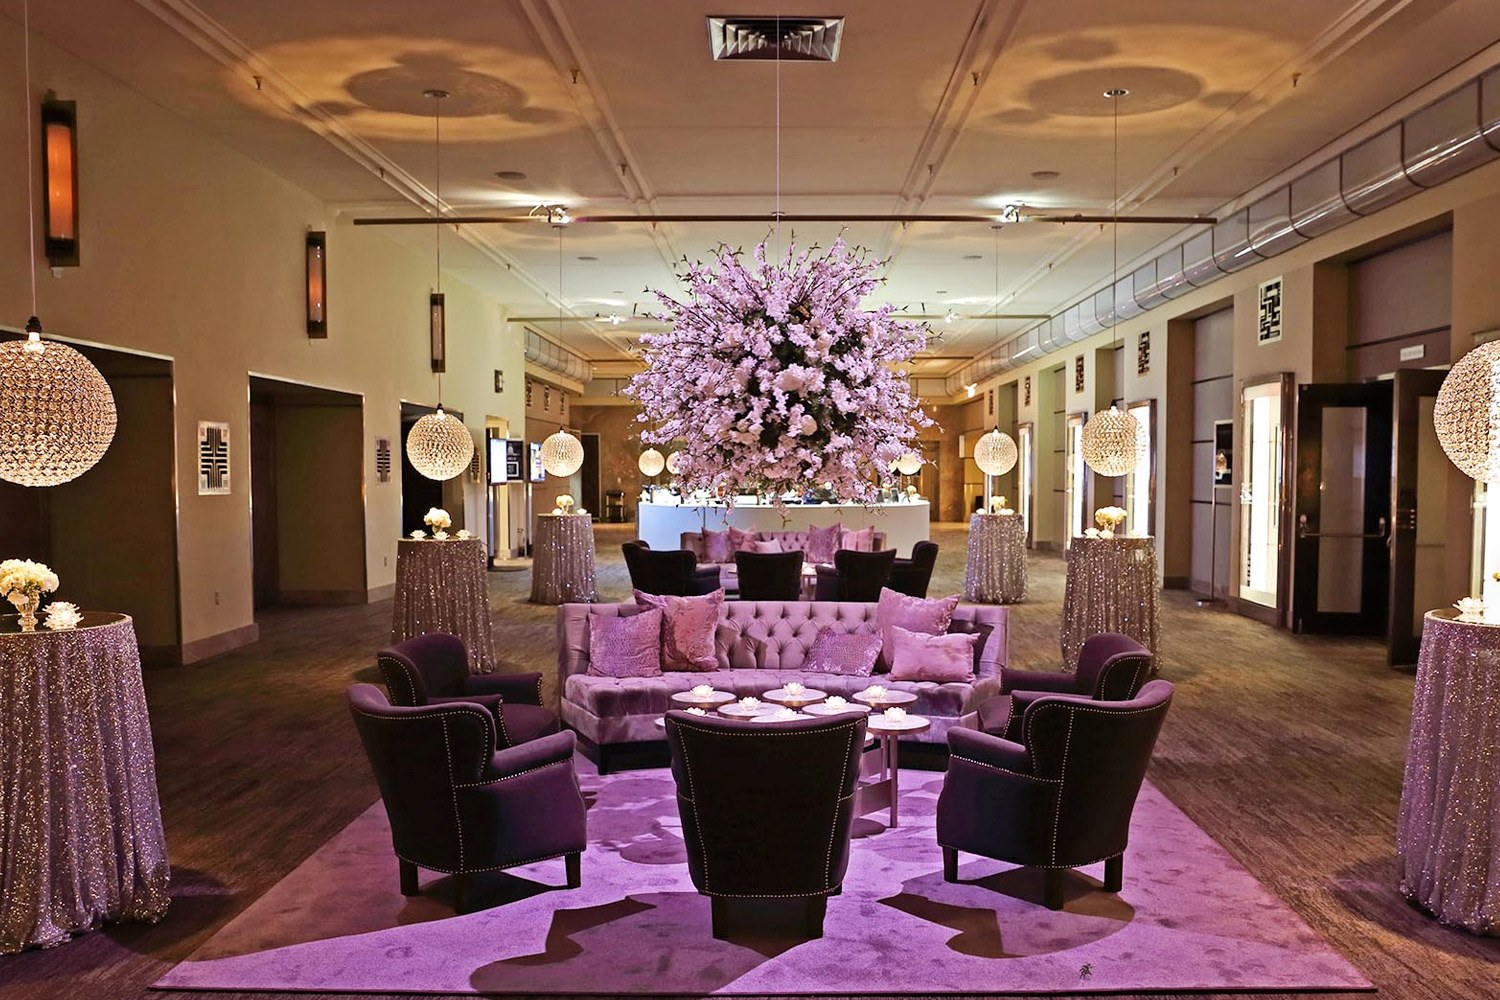 The Carlu Venue